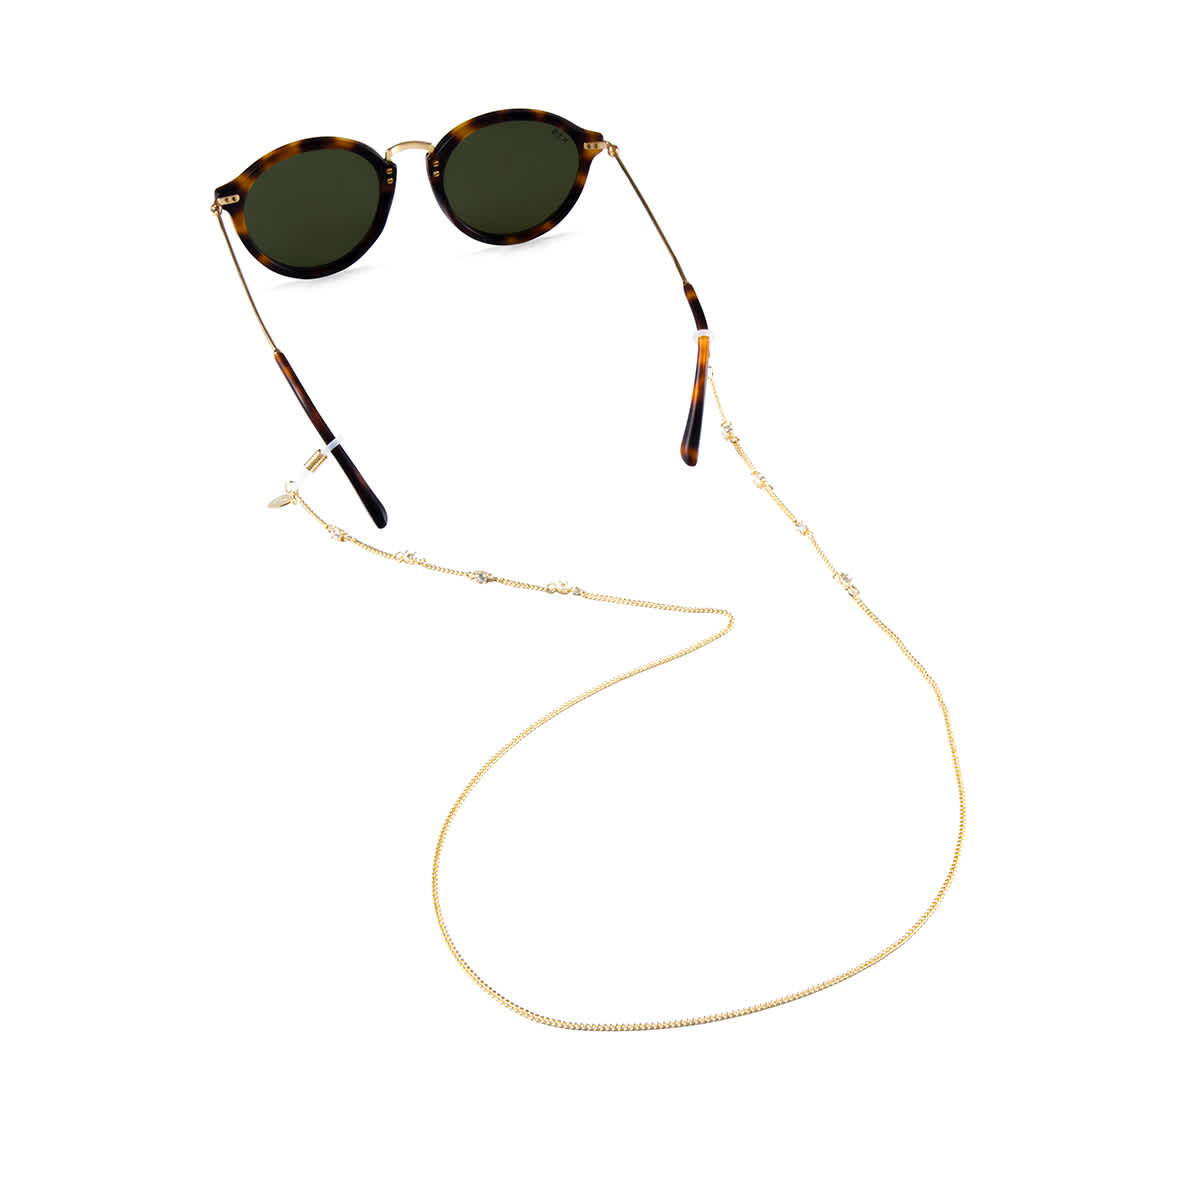 "Eyewear Chain ""Mao"""